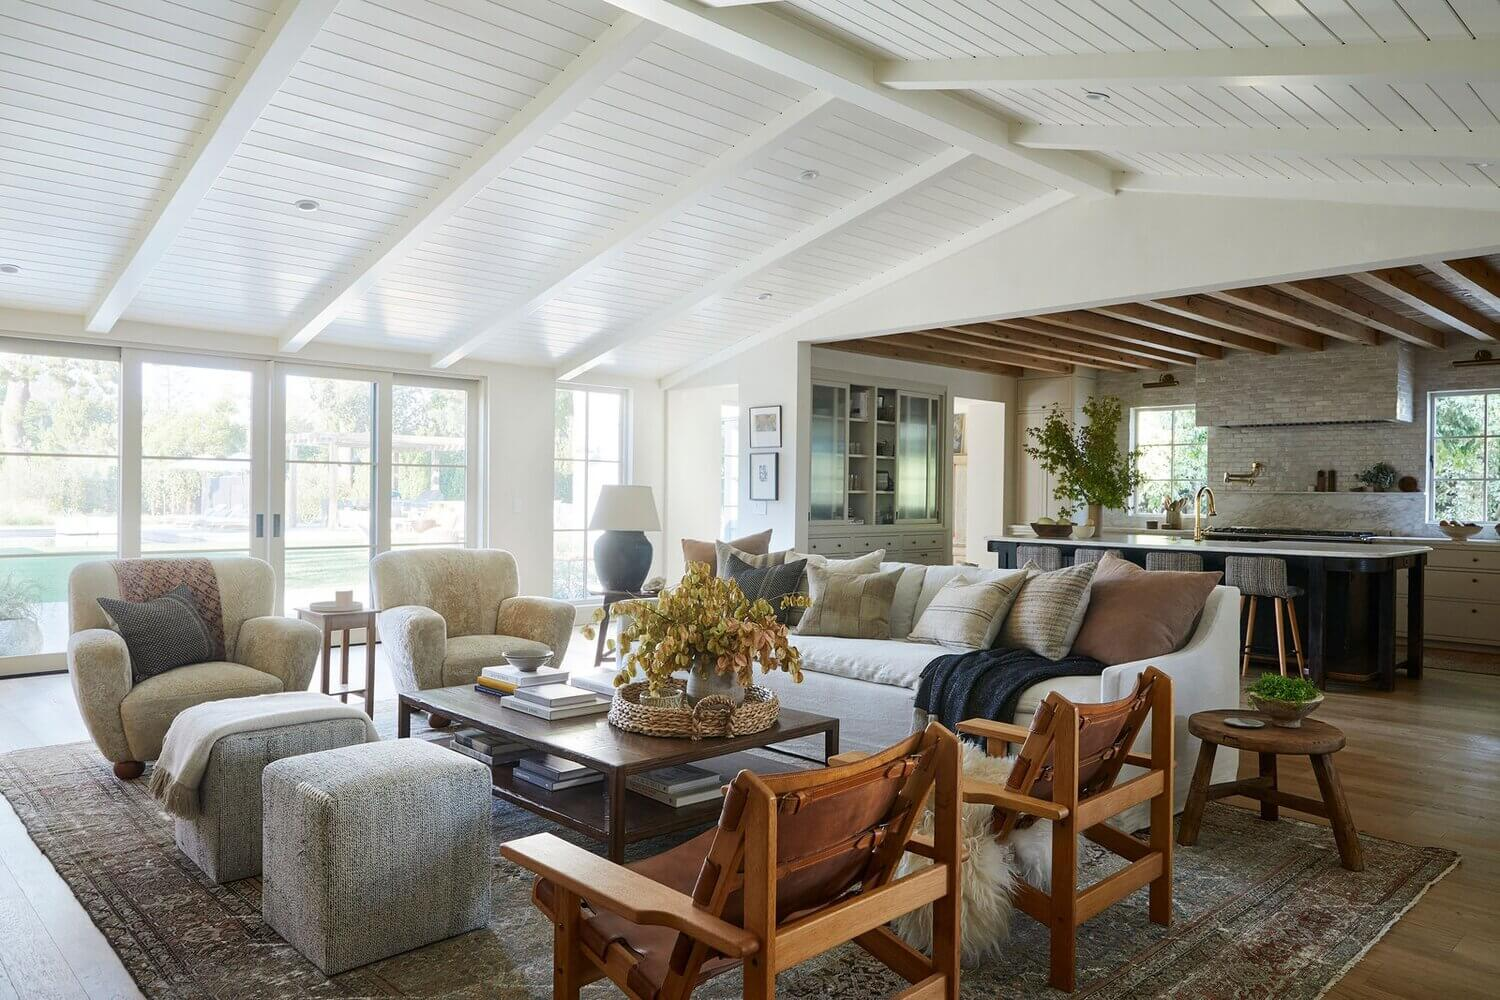 The Woodland Hills Family Home of Interior Designer Amber Lewis